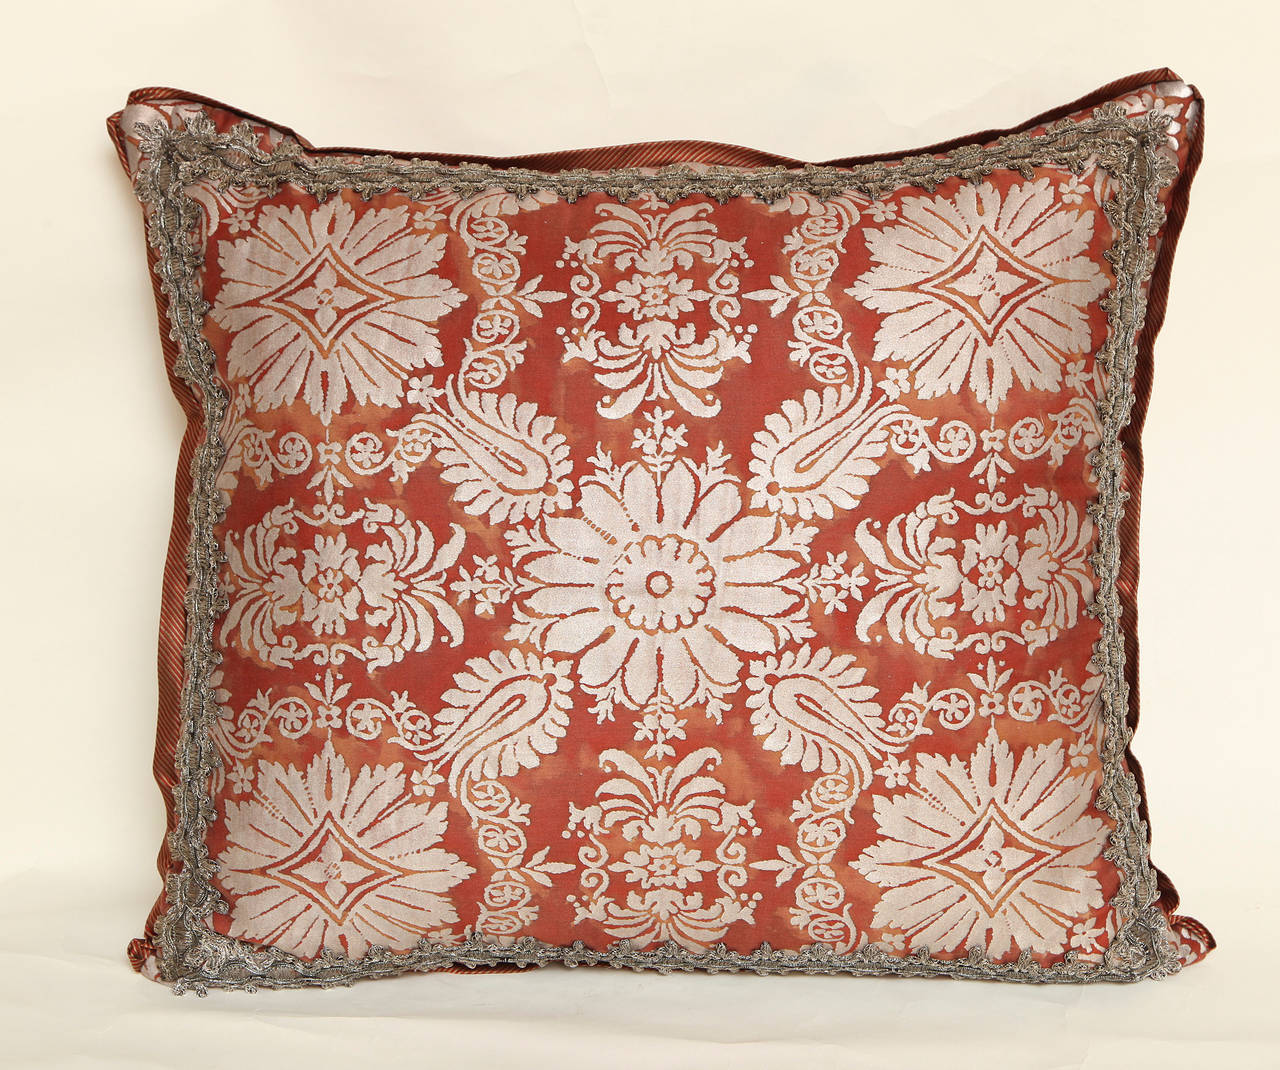 A Fortuny fabric red and silvery gold Impero pattern cushion with handmade metallic lace gallon border, pinstriped silk bias edging, and matching back. Newly made using vintage Fortuny fabric, circa 1940